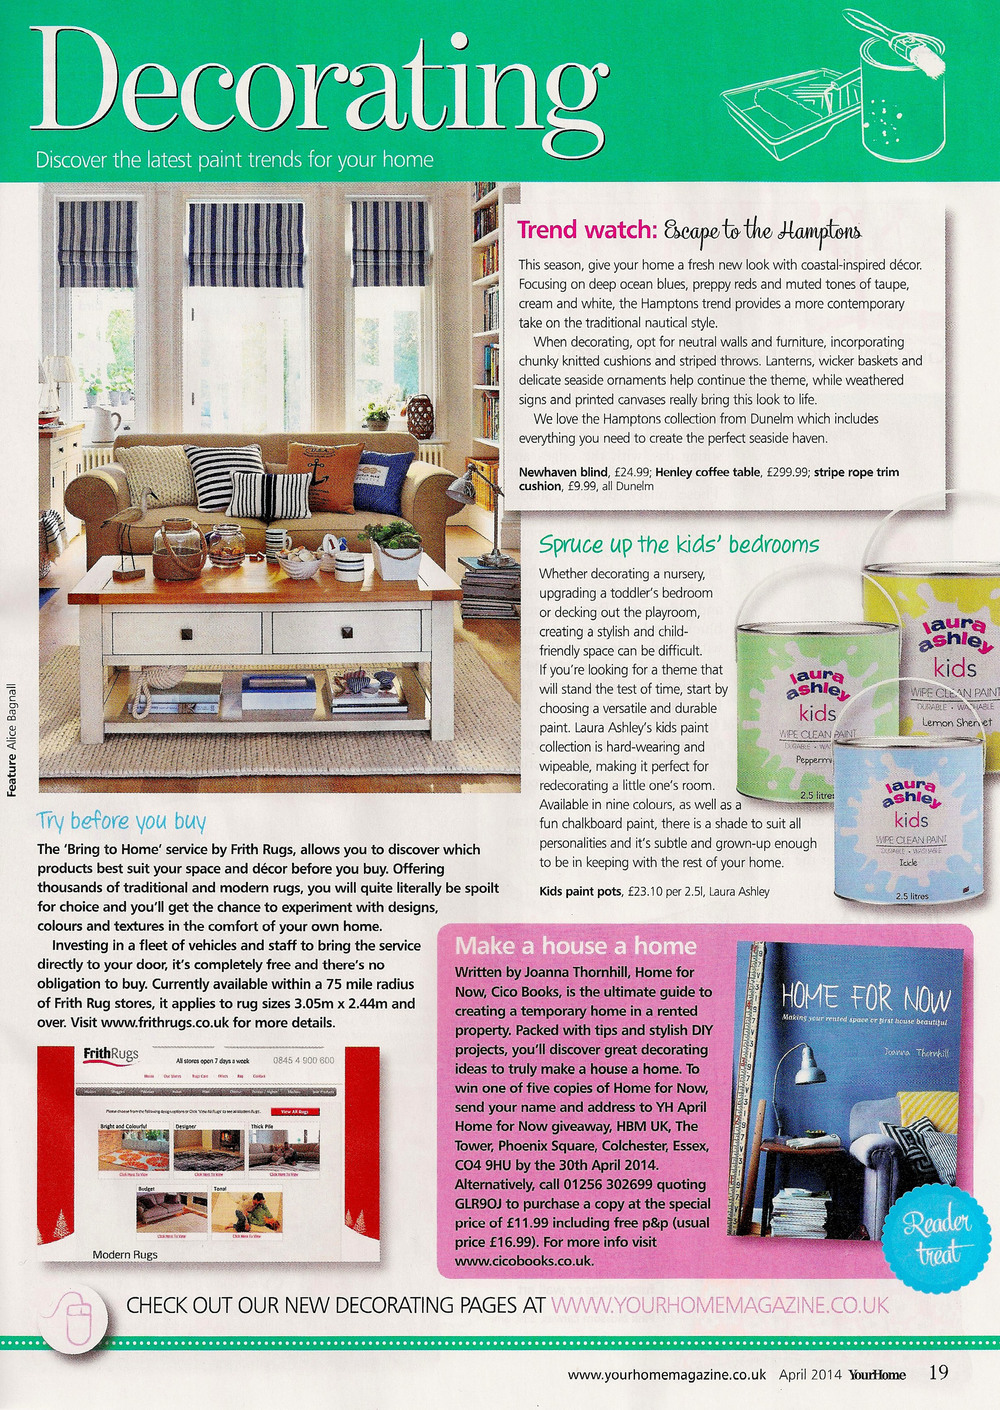 Your Home magazine, April 2014